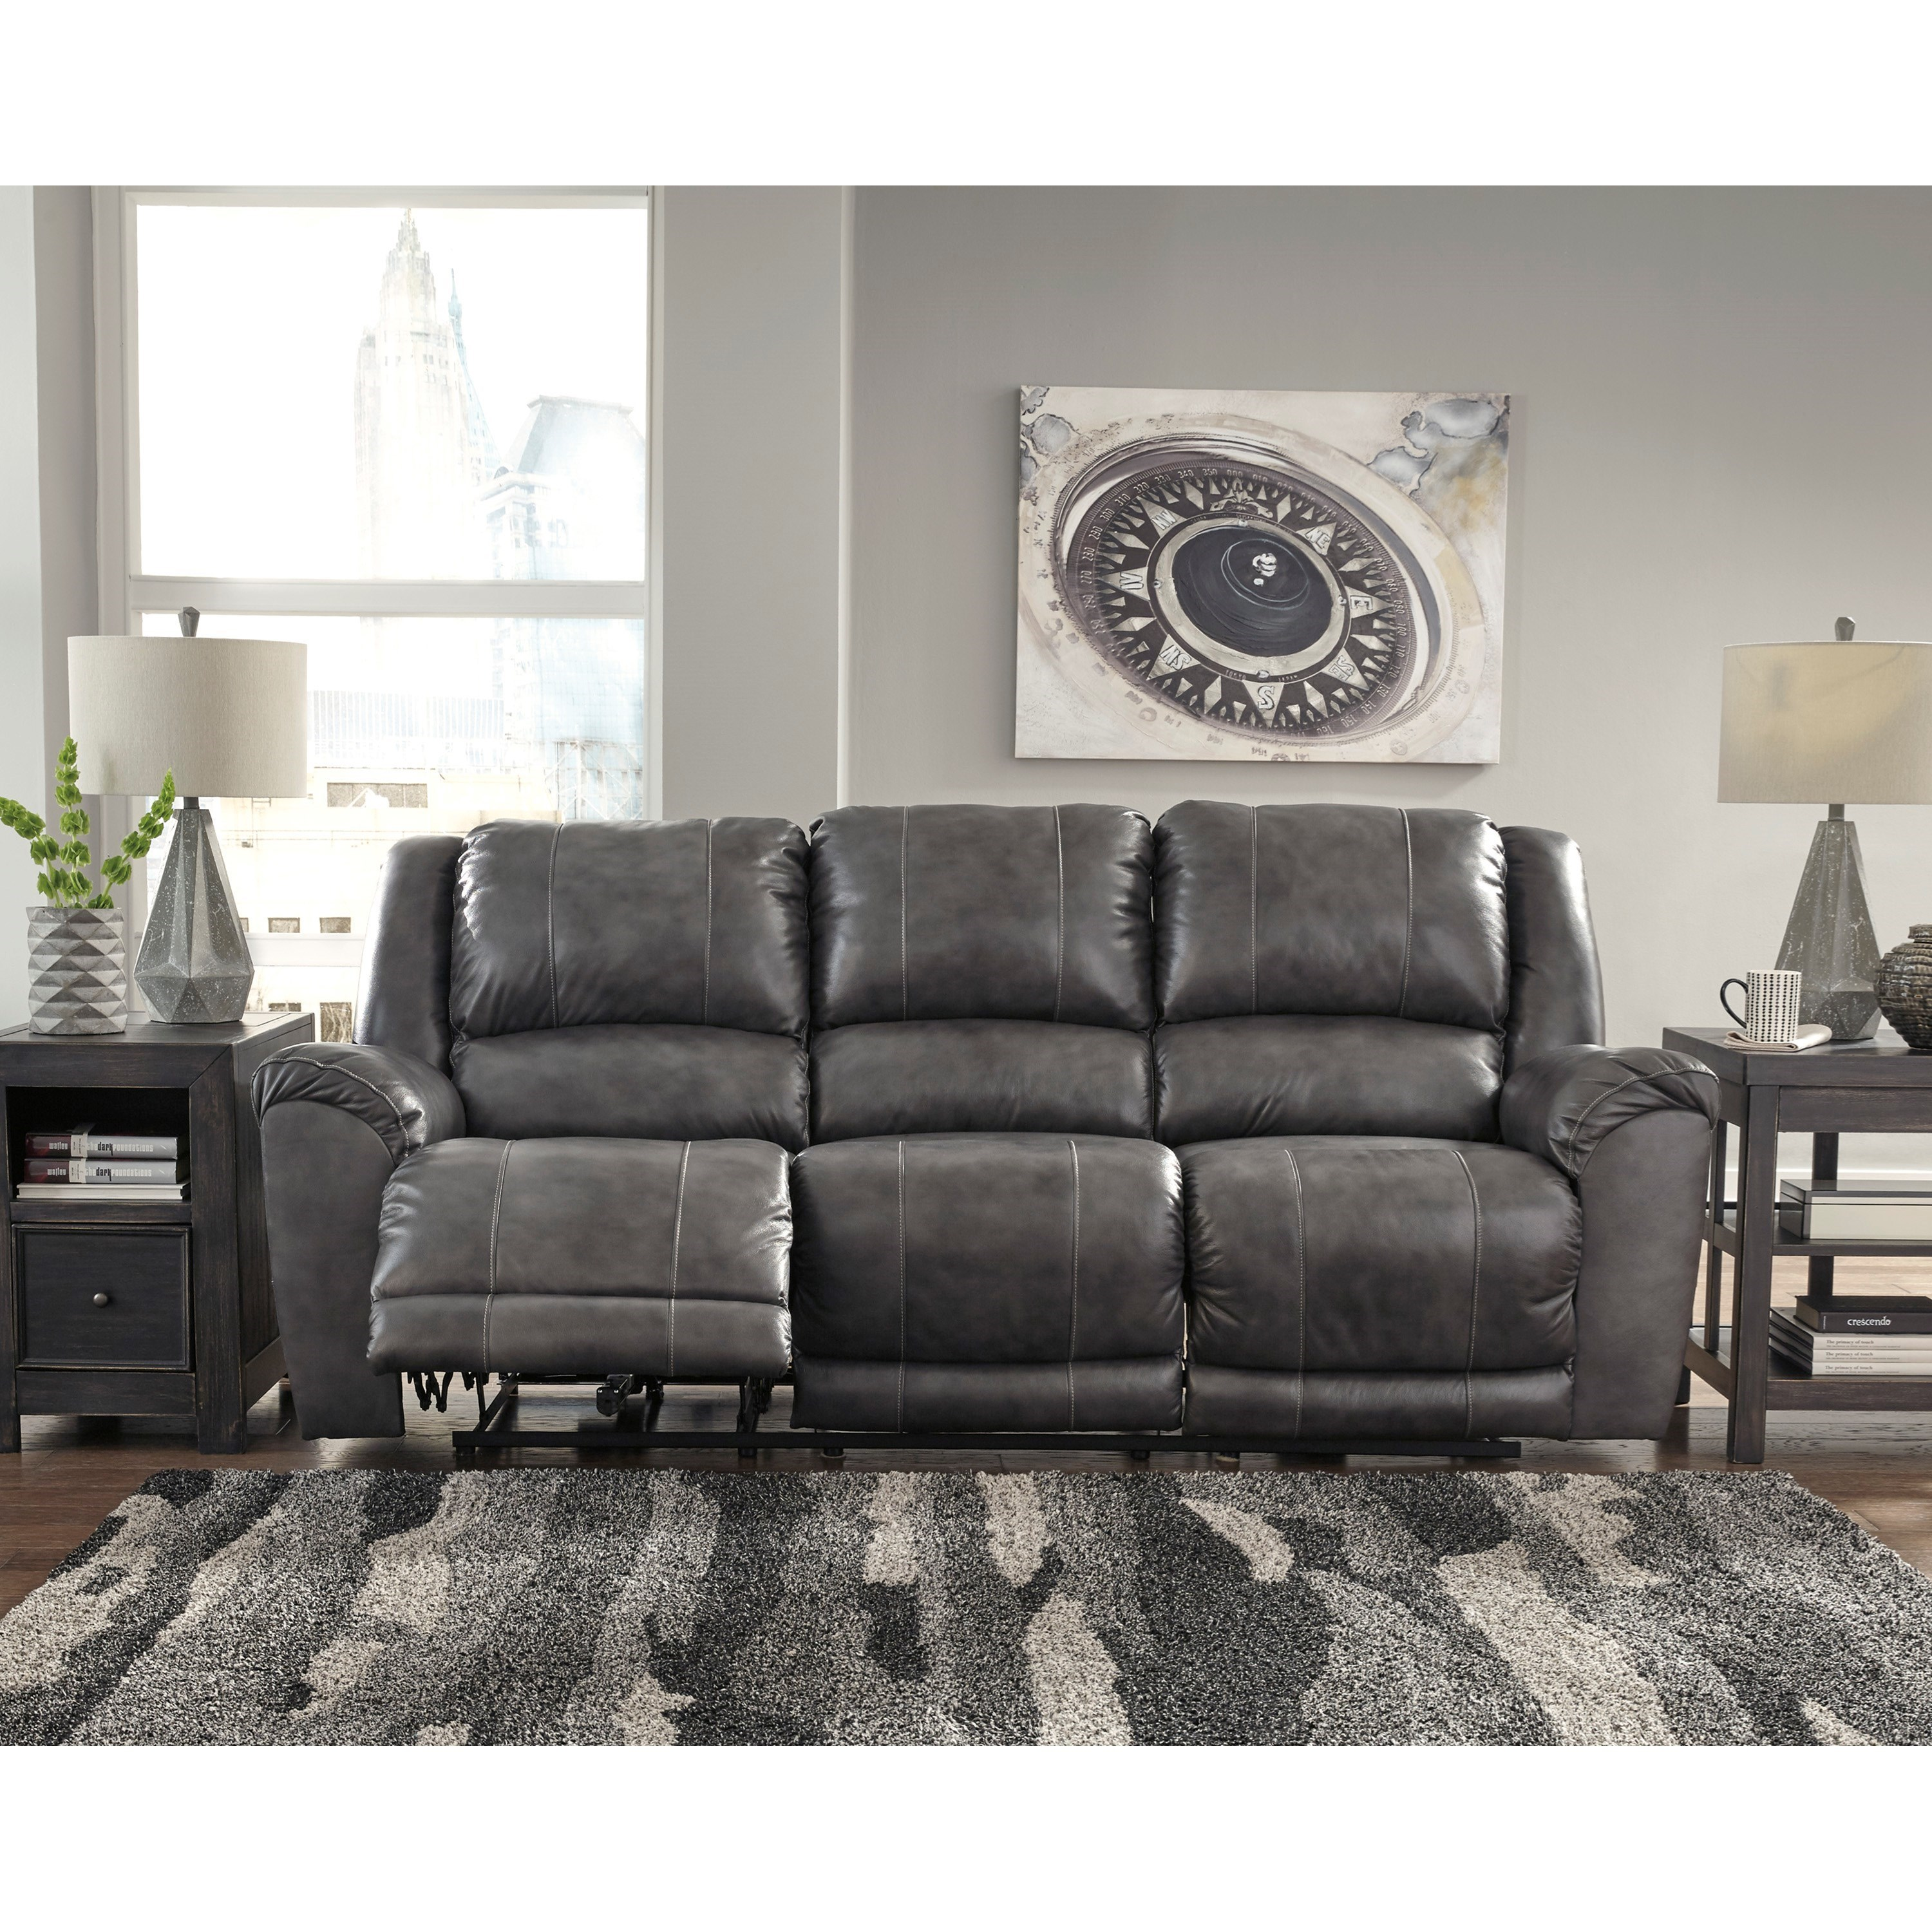 Does Sofa And Loveseat Have To Match: Ashley Signature Design Persiphone 6070187 Leather Match